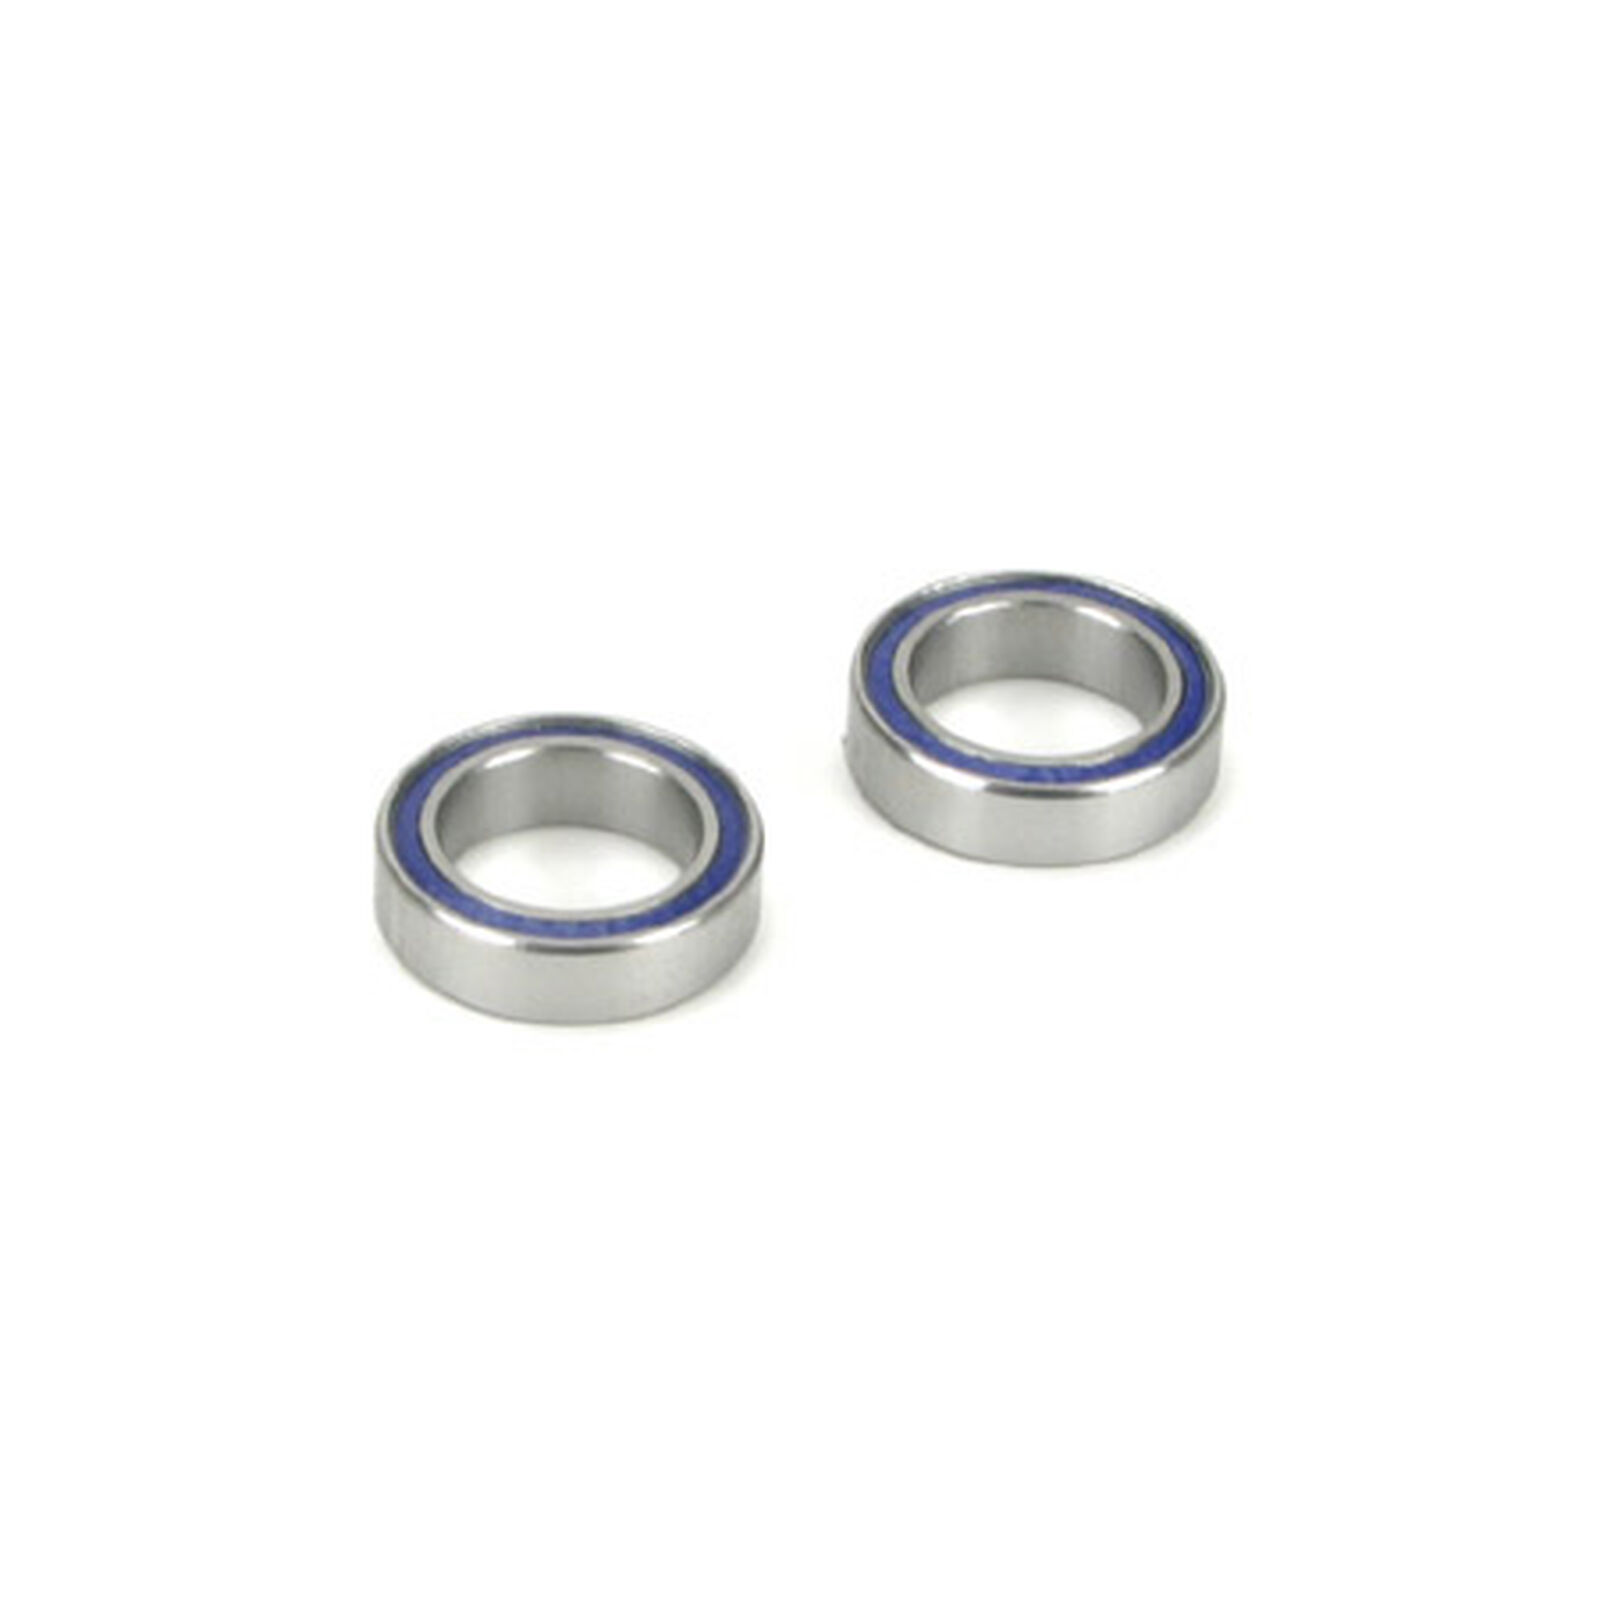 10 X 15mm Sealed Ball Bearings (2): 22/22-4